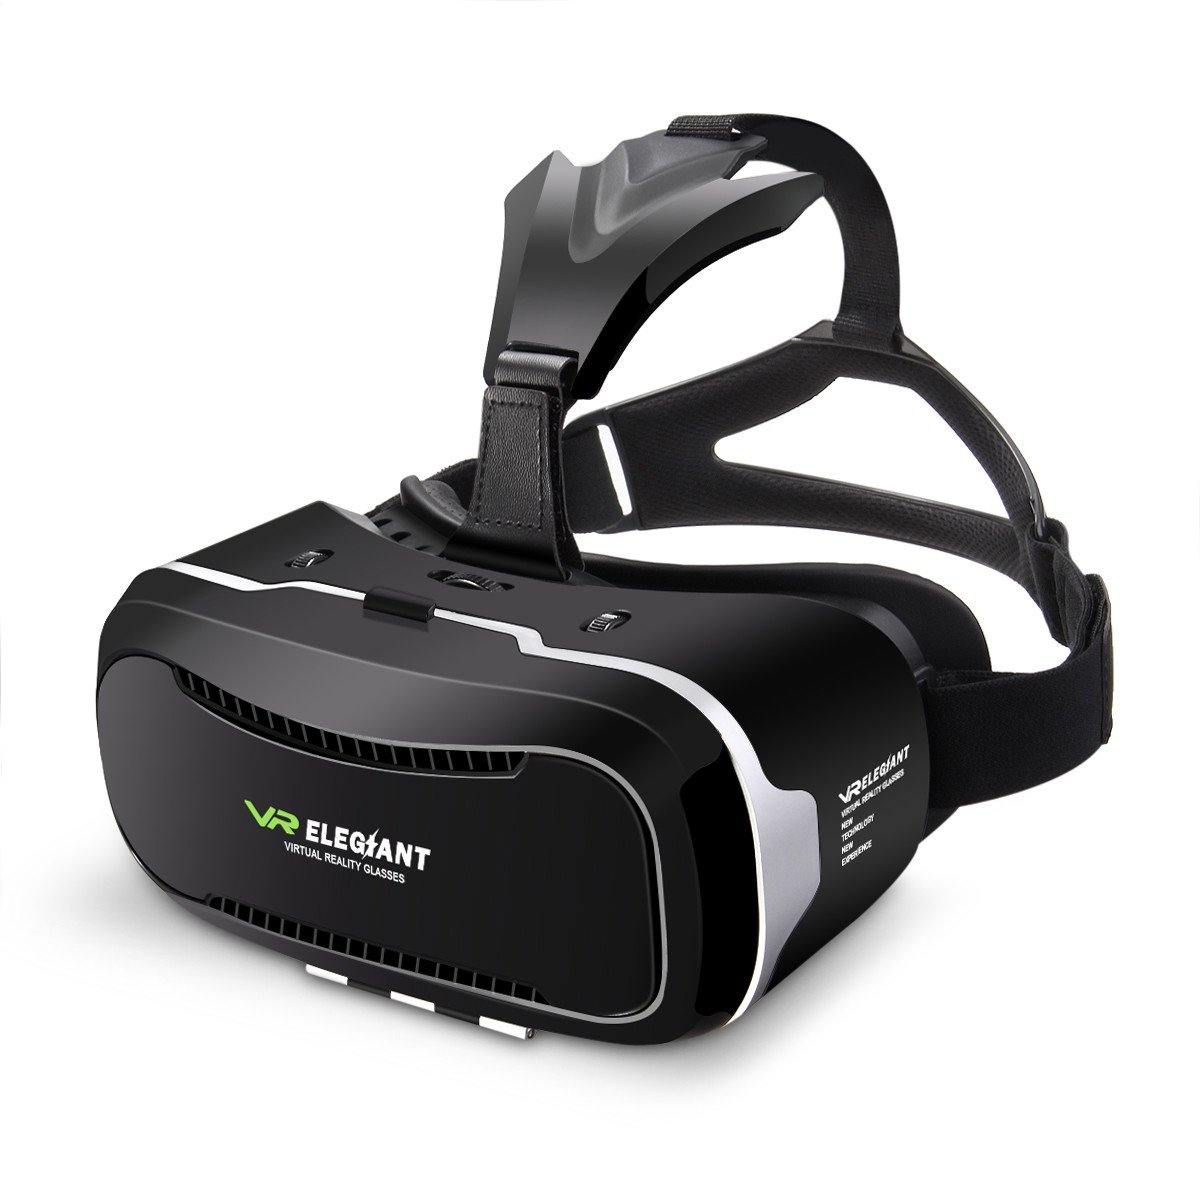 Virtual Reality Headset, ELEGIANT 3D VR Glasses Virtual Reality Box for 3D Movies Video Games for iPhone 8 7 6 6s Plus Samsung S8 S7 S6 Edge S5 Note 5 and Other Smartphone - 2nd Generation VR Headset